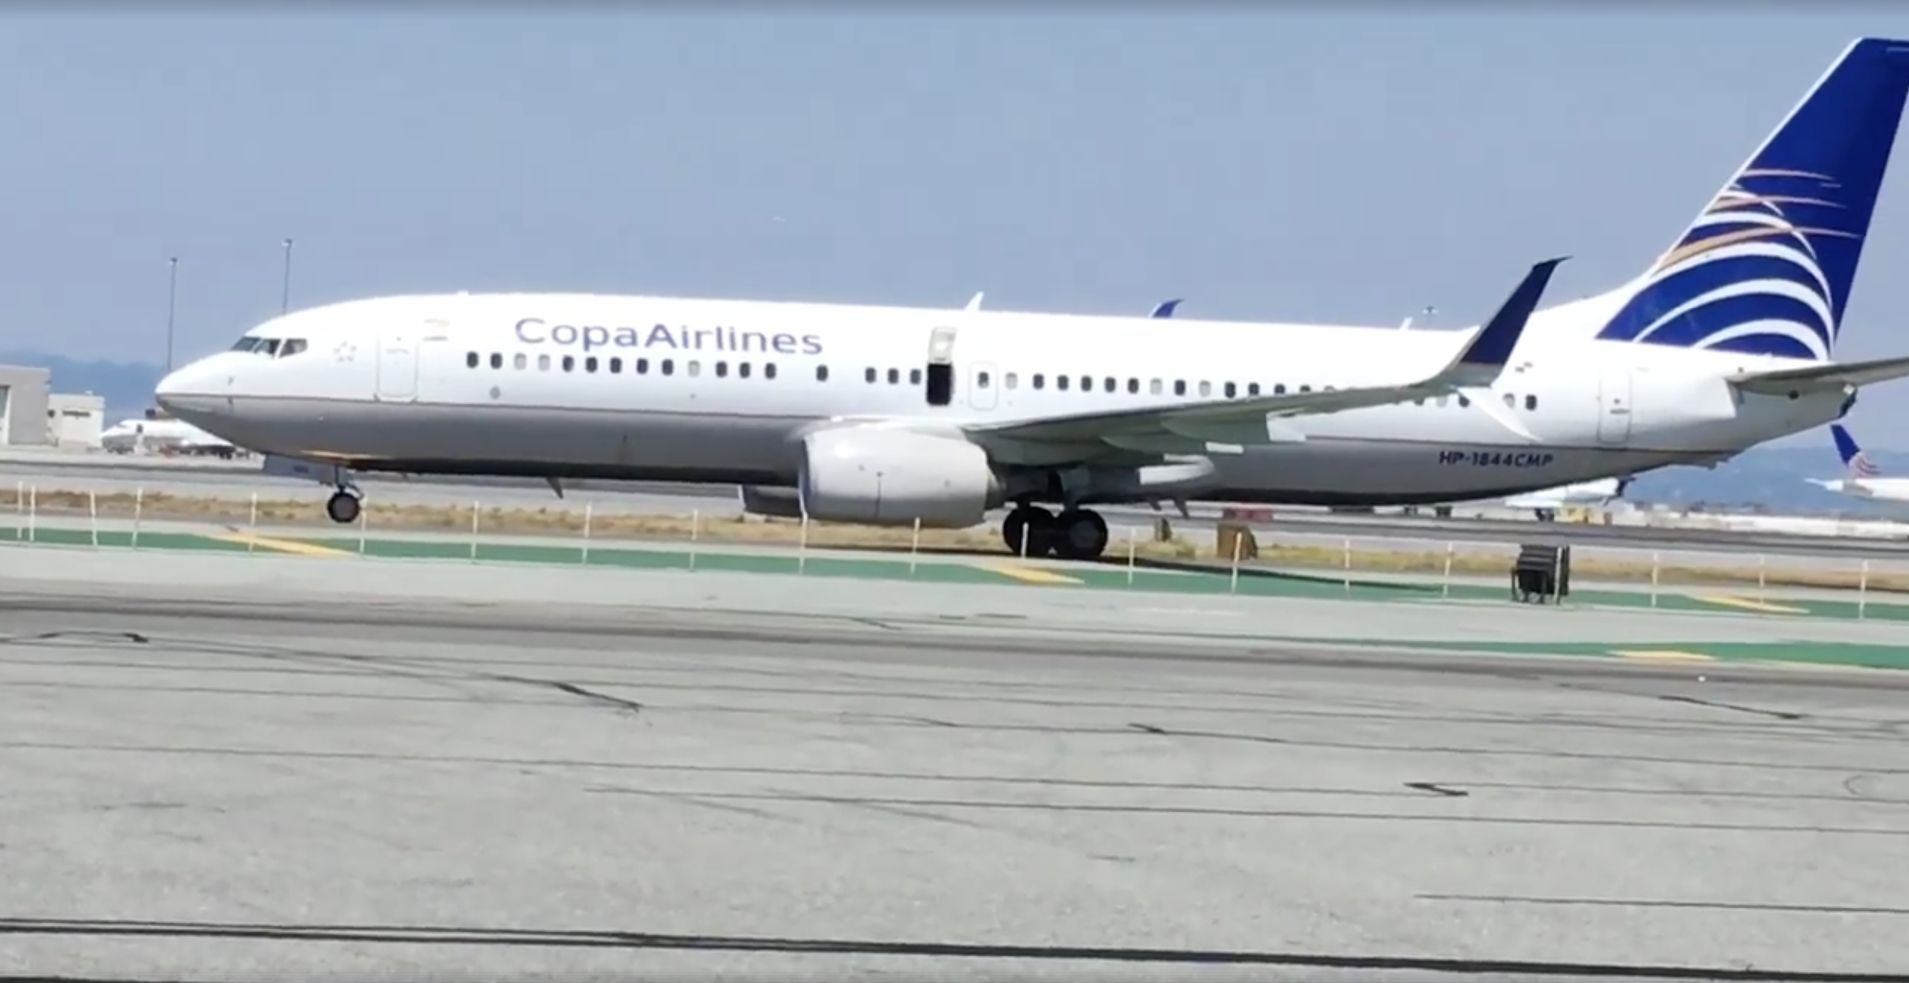 A Copa Airlines plane is seen with an emergency door open